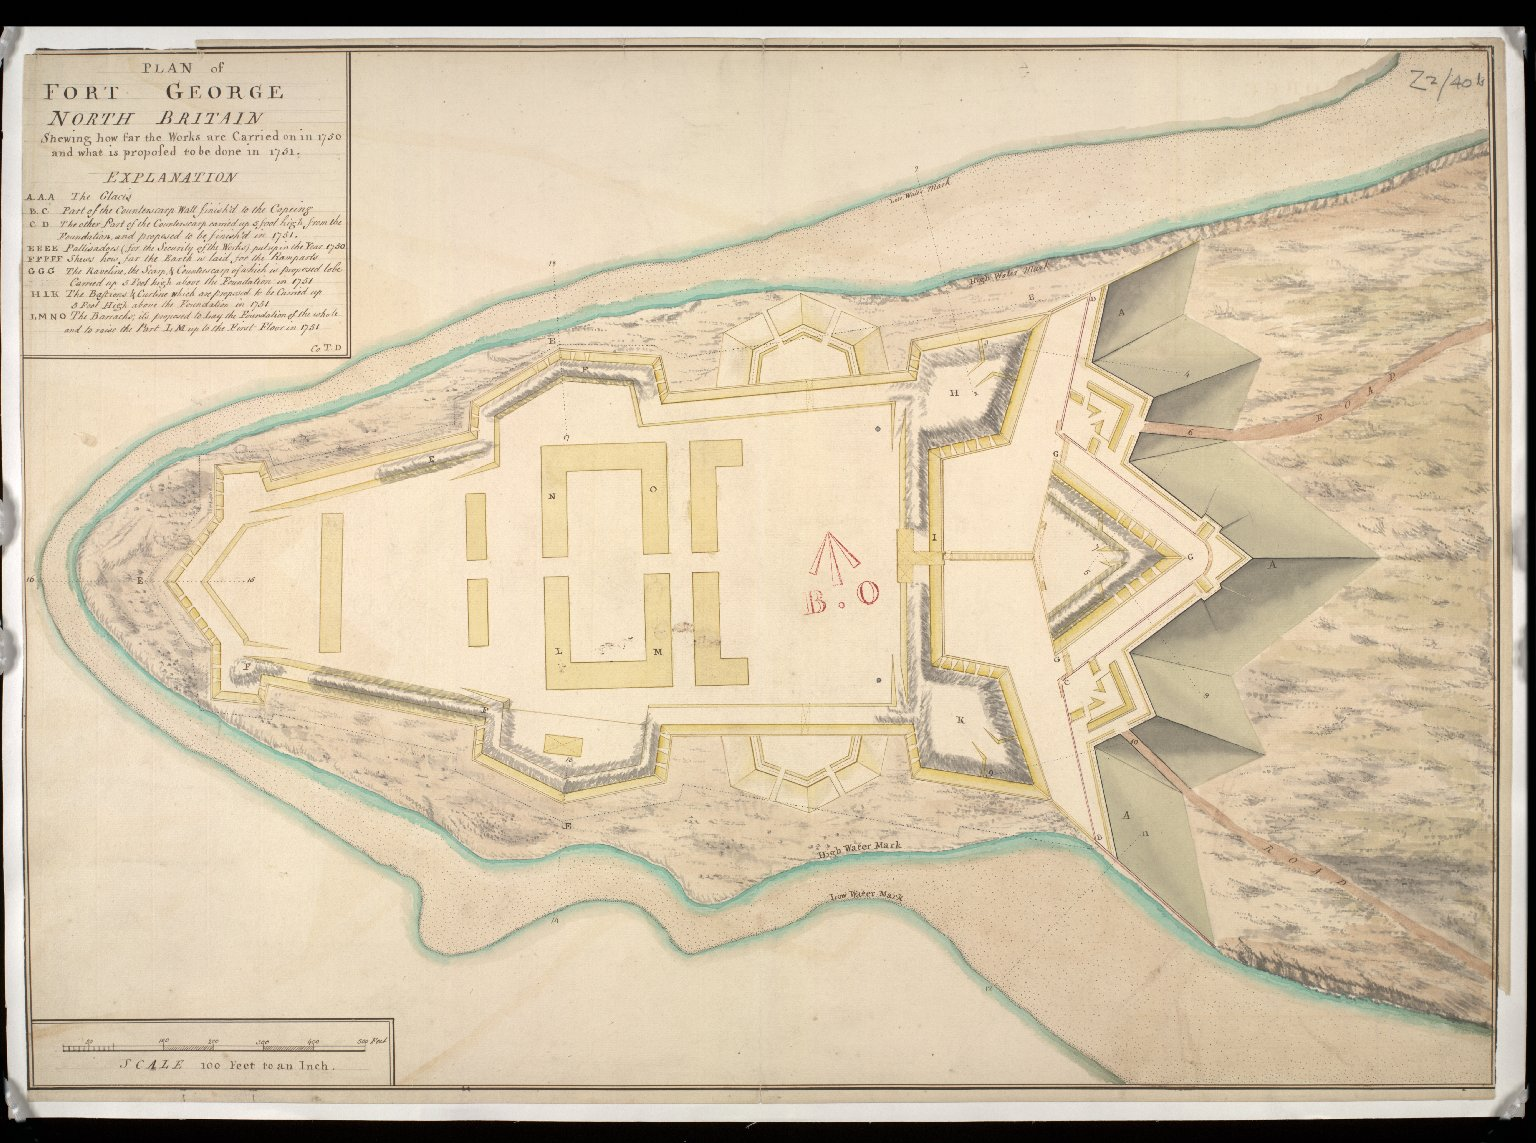 Plan of Fort George North Britain : shewing how far the works are carried on in 1750; and what is proposed to be done in 1751 [copy] [1 of 1]